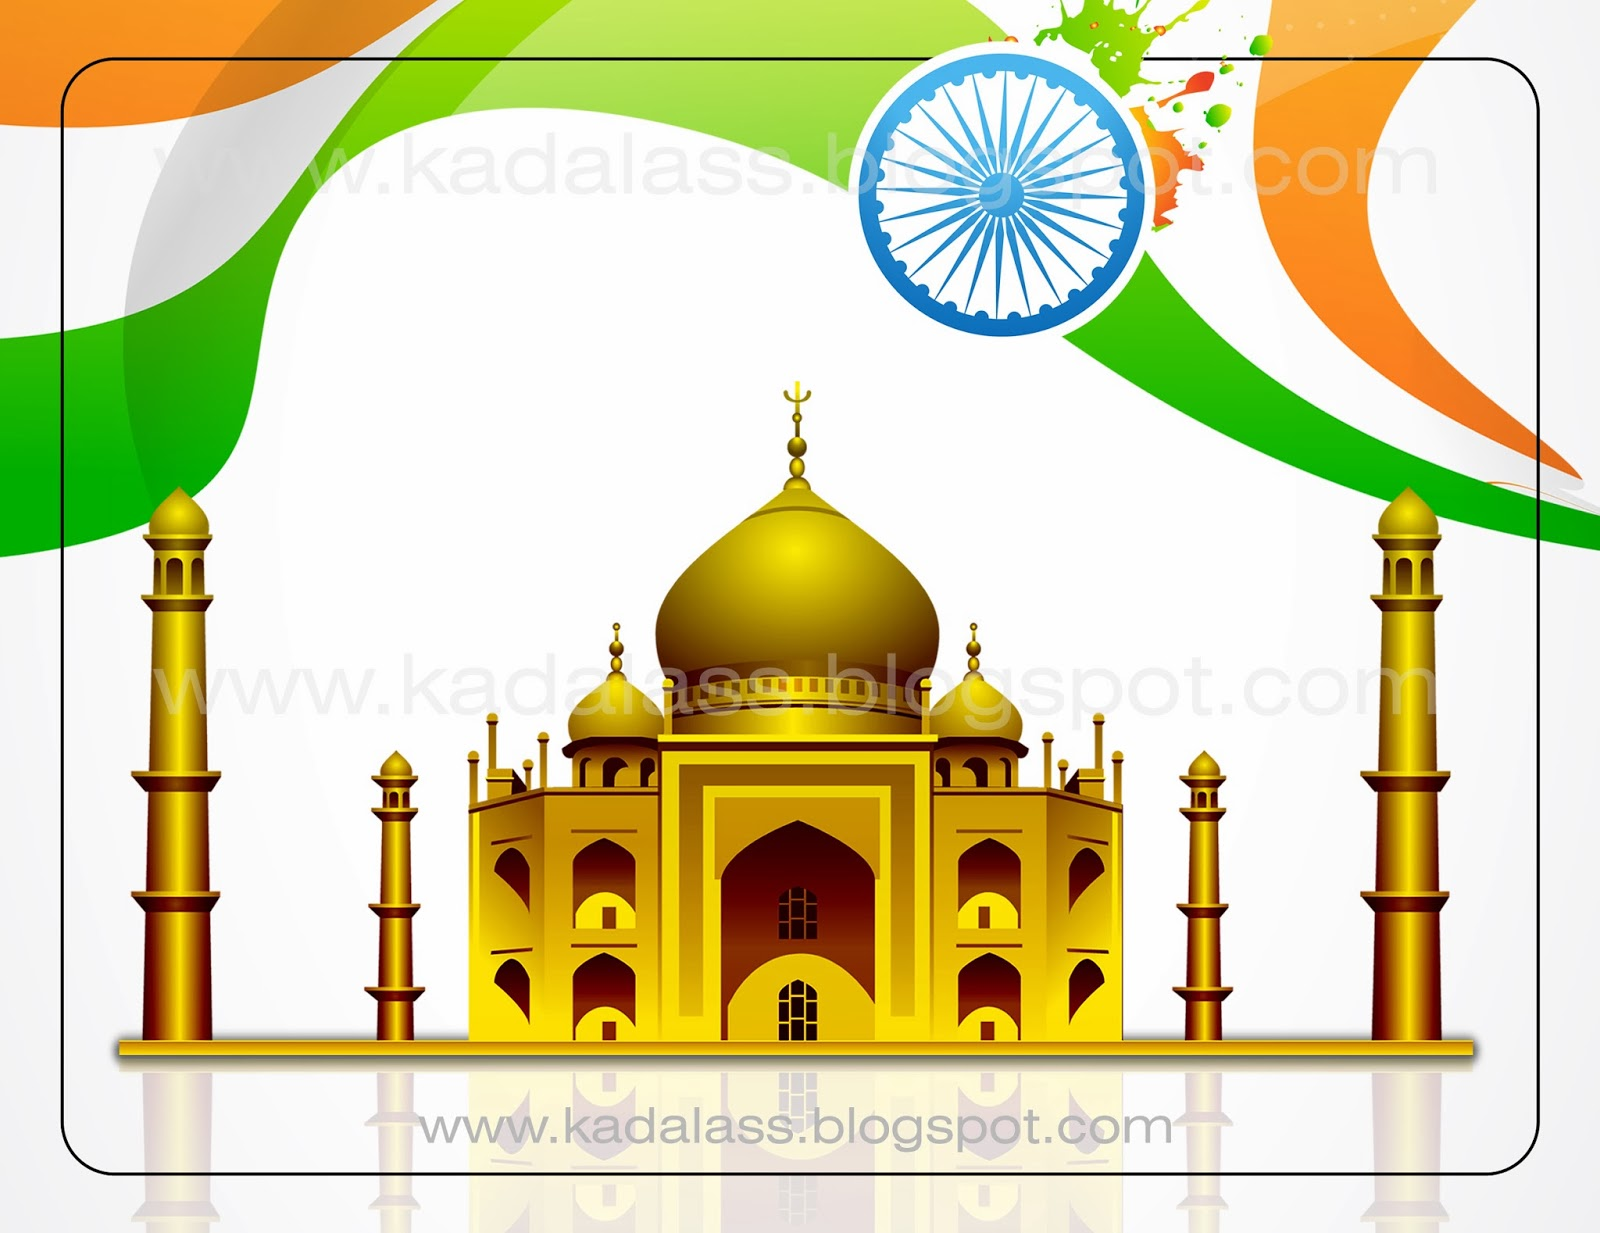 Muhammed Kunhi Wandoor, India, Republic Day, Indian Republic, Independence day, kerala